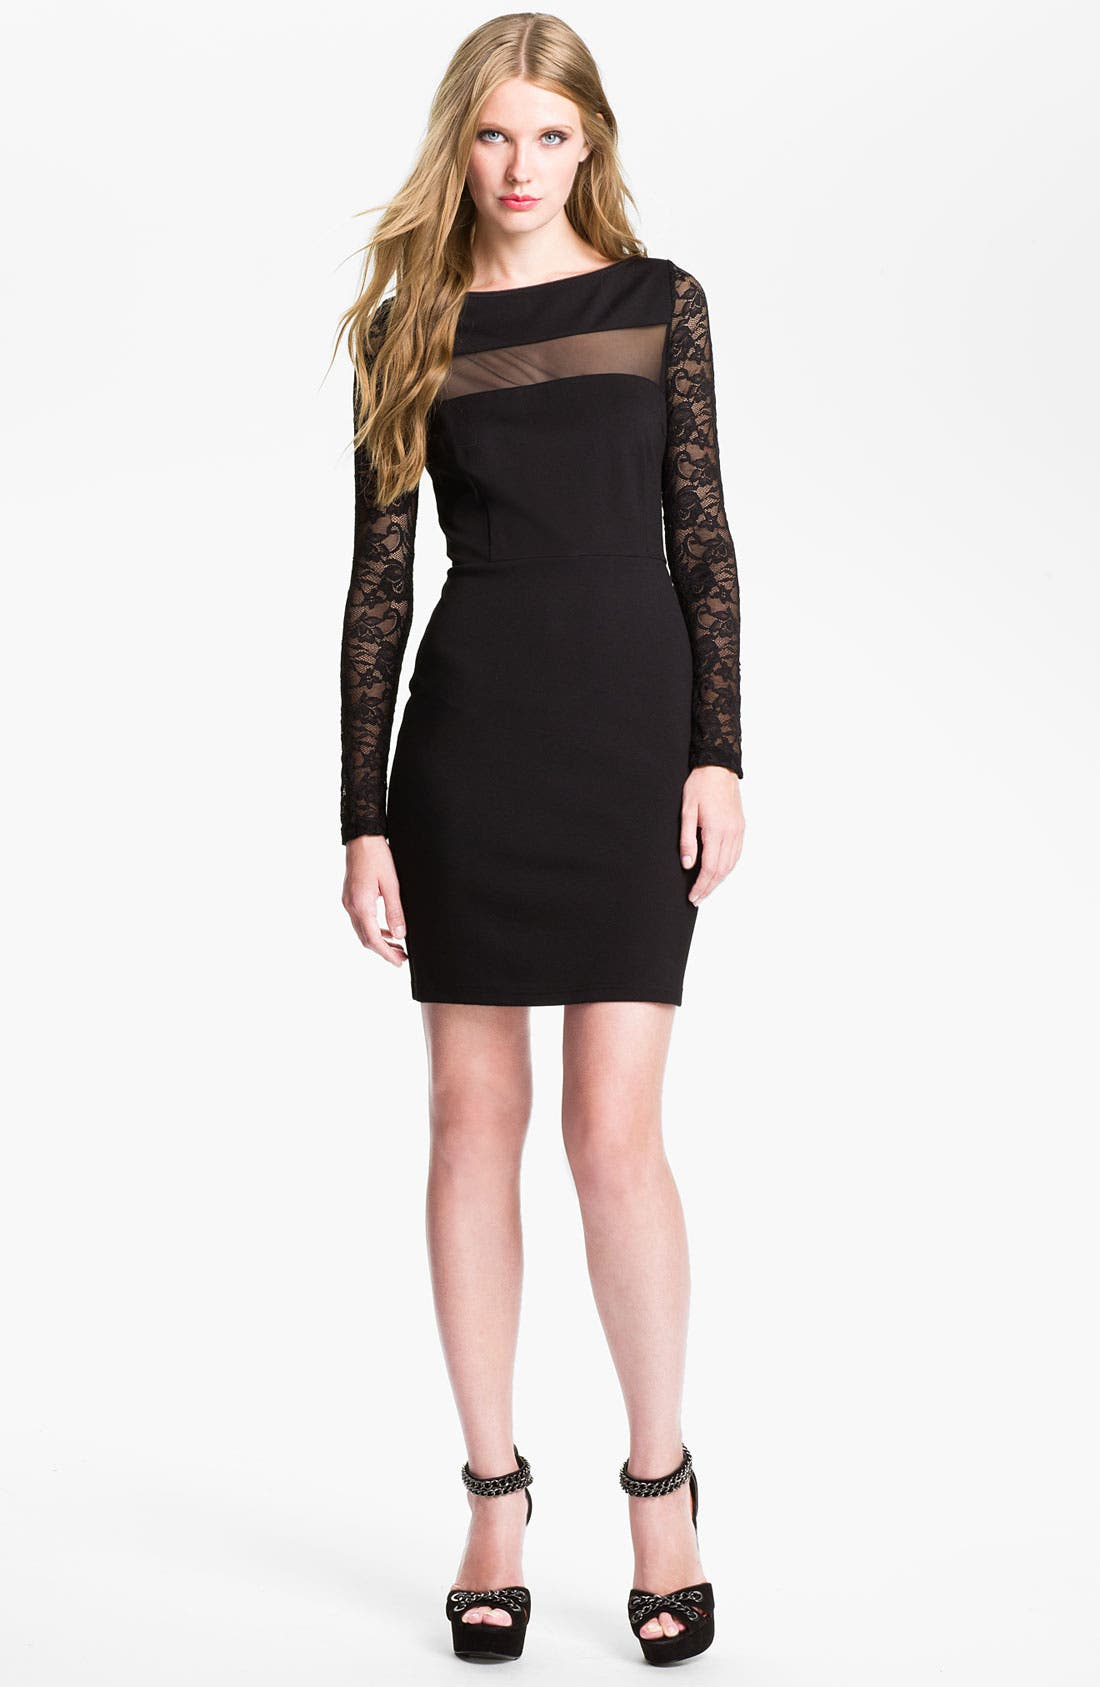 Alternate Image 1 Selected - BB Dakota 'Parley' Illusion Mesh Jersey Knit Sheath Dress